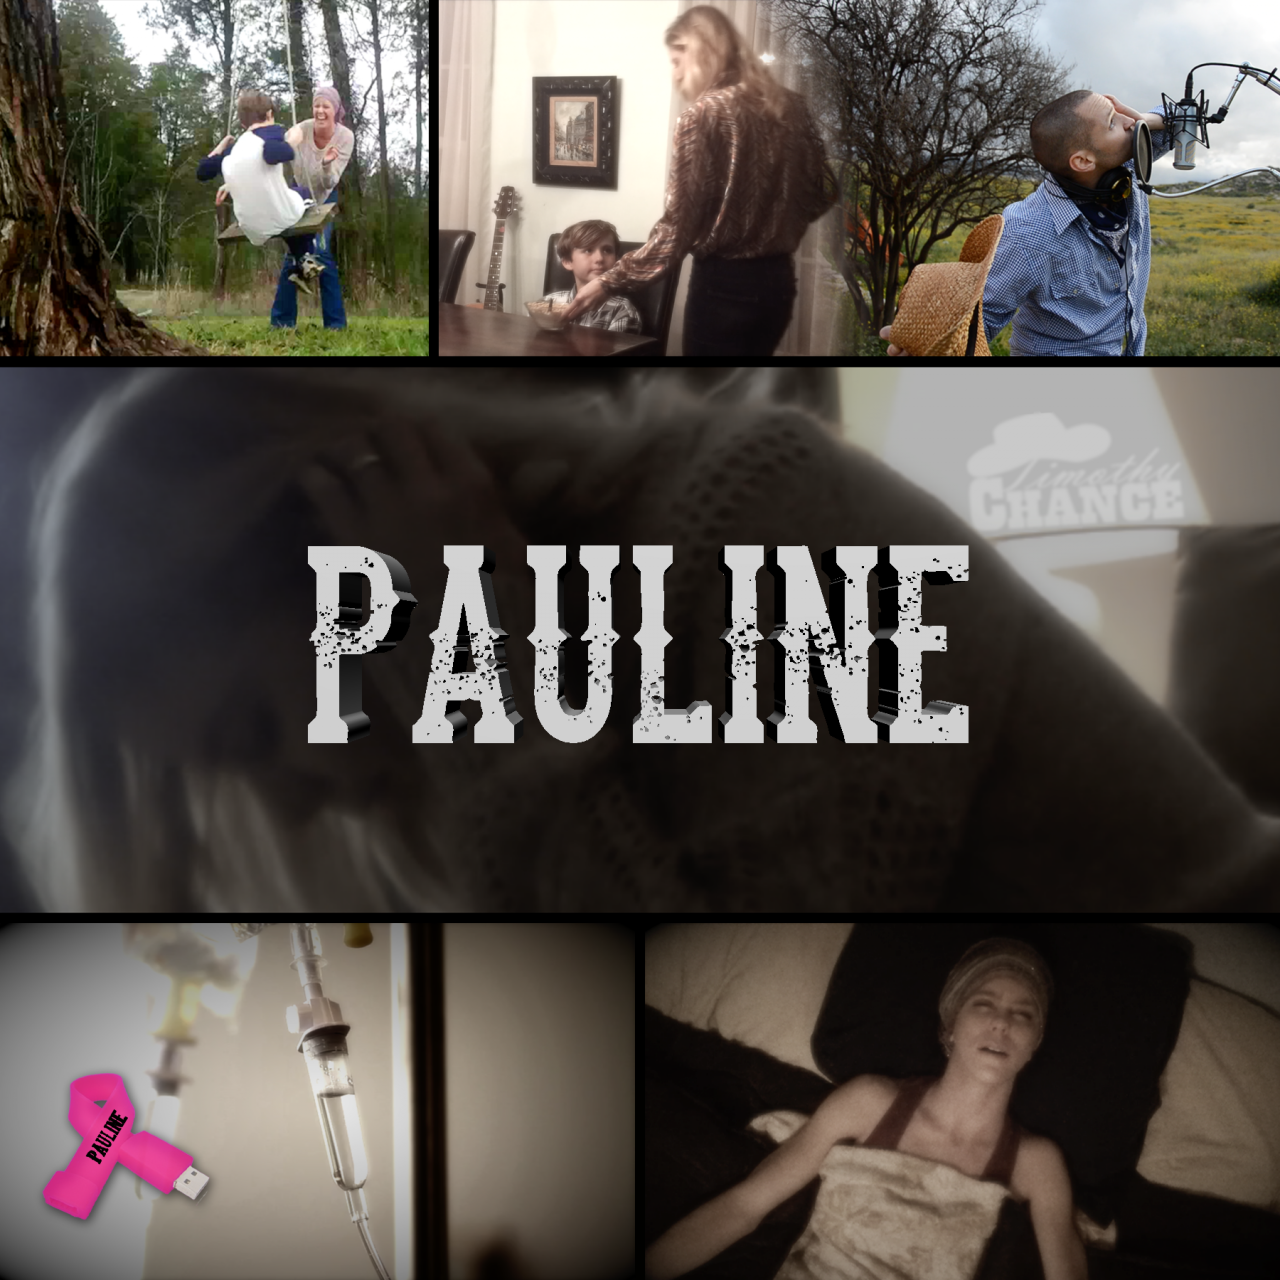 """Pauline Cover - 001 - American Music Channel proudly presents the New Single from the Timothy Chance Band, """"PAULINE""""! Watch this powerful Music Video and more at www.AmericanMusicChannel.com today.  *Download This Song at www.TimothyChanceBand.com"""